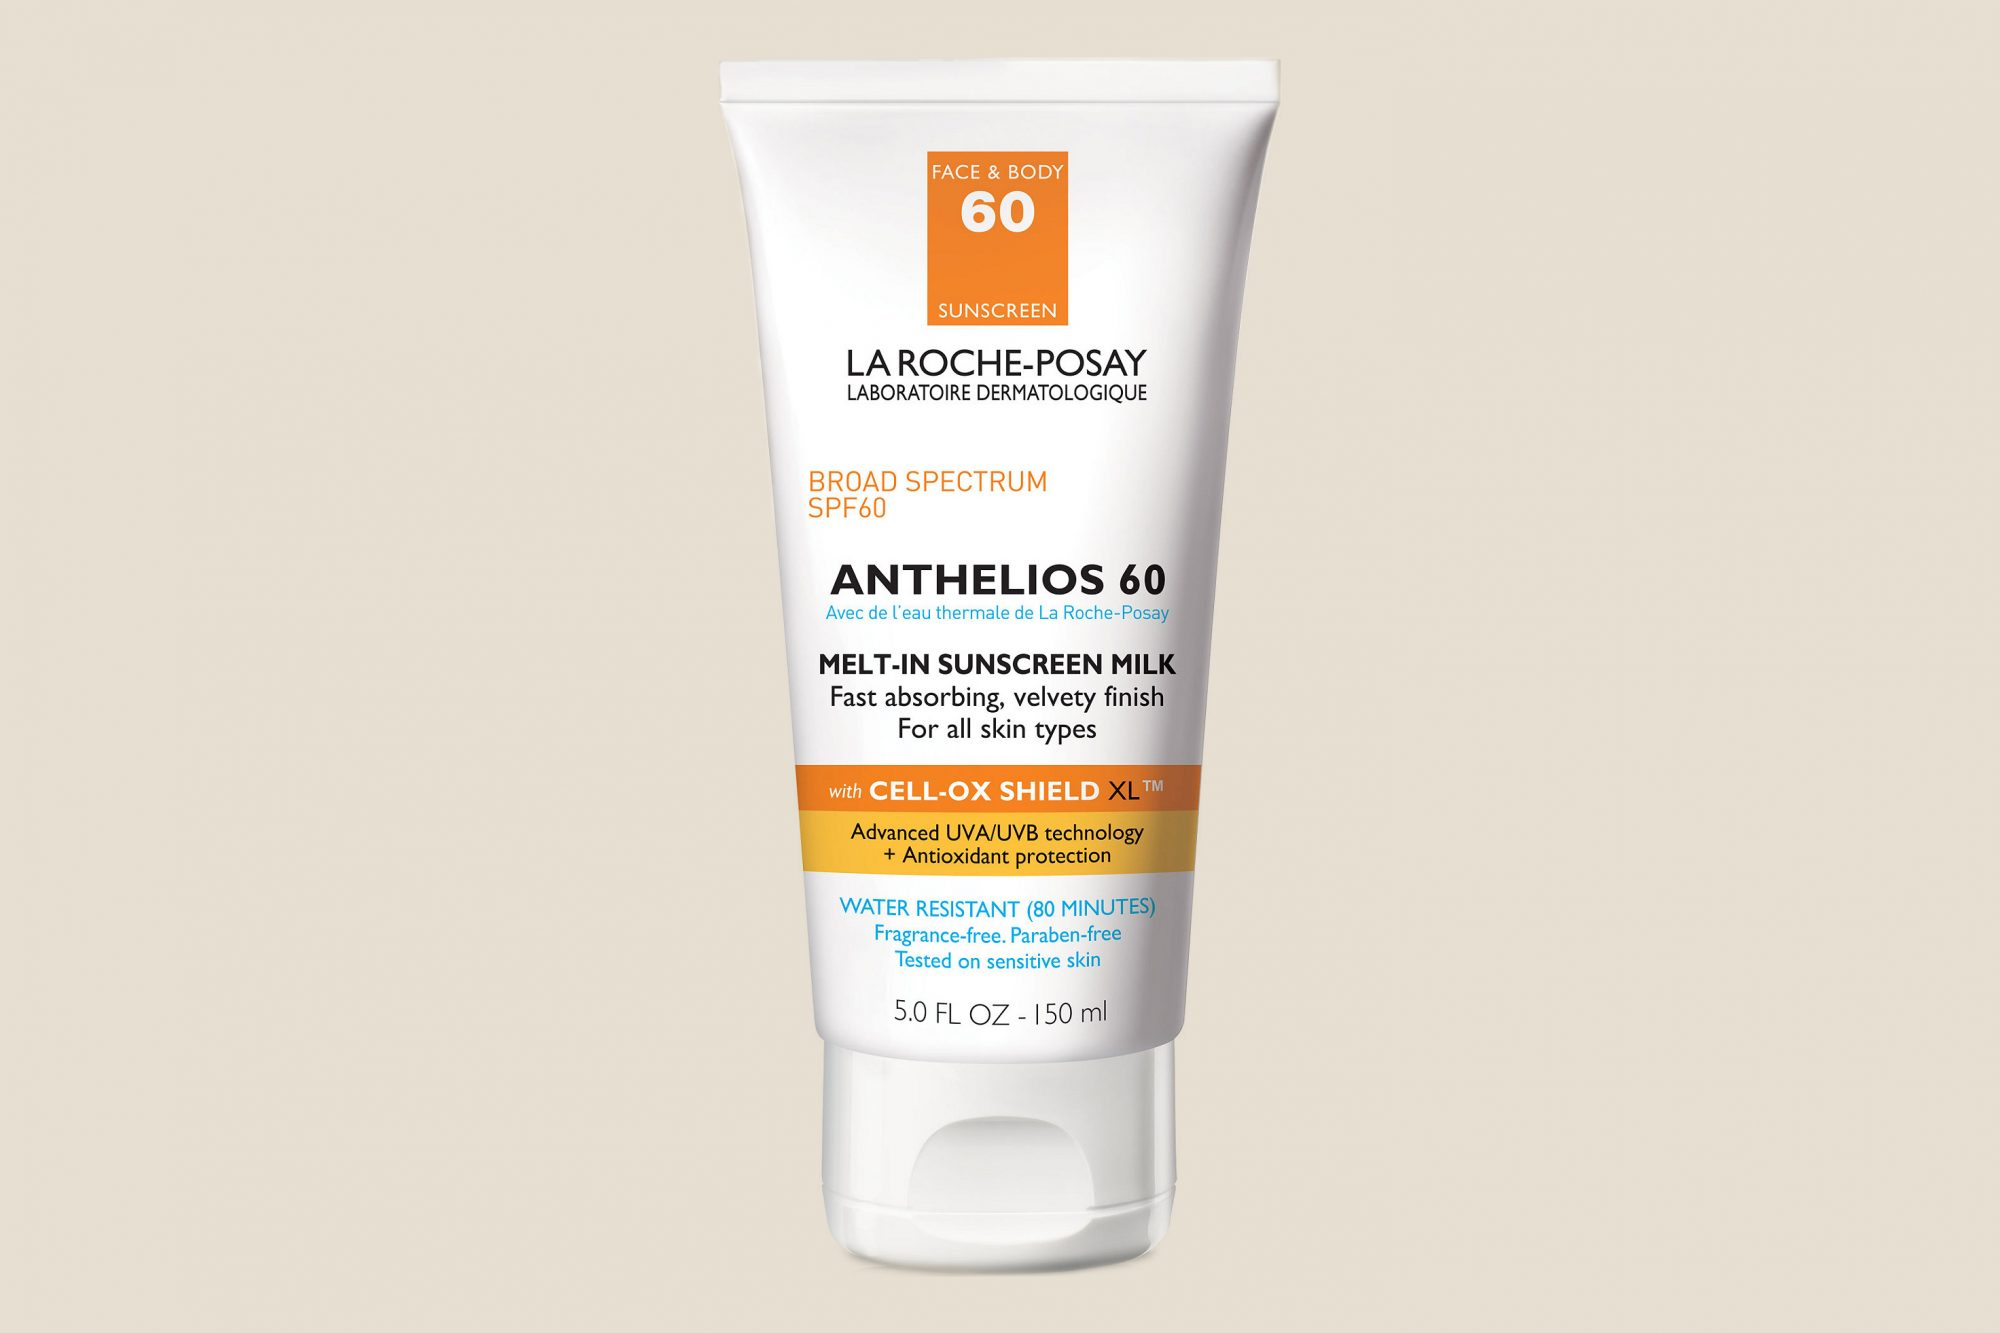 la roche posay anthelios 60 melt in sunscreen